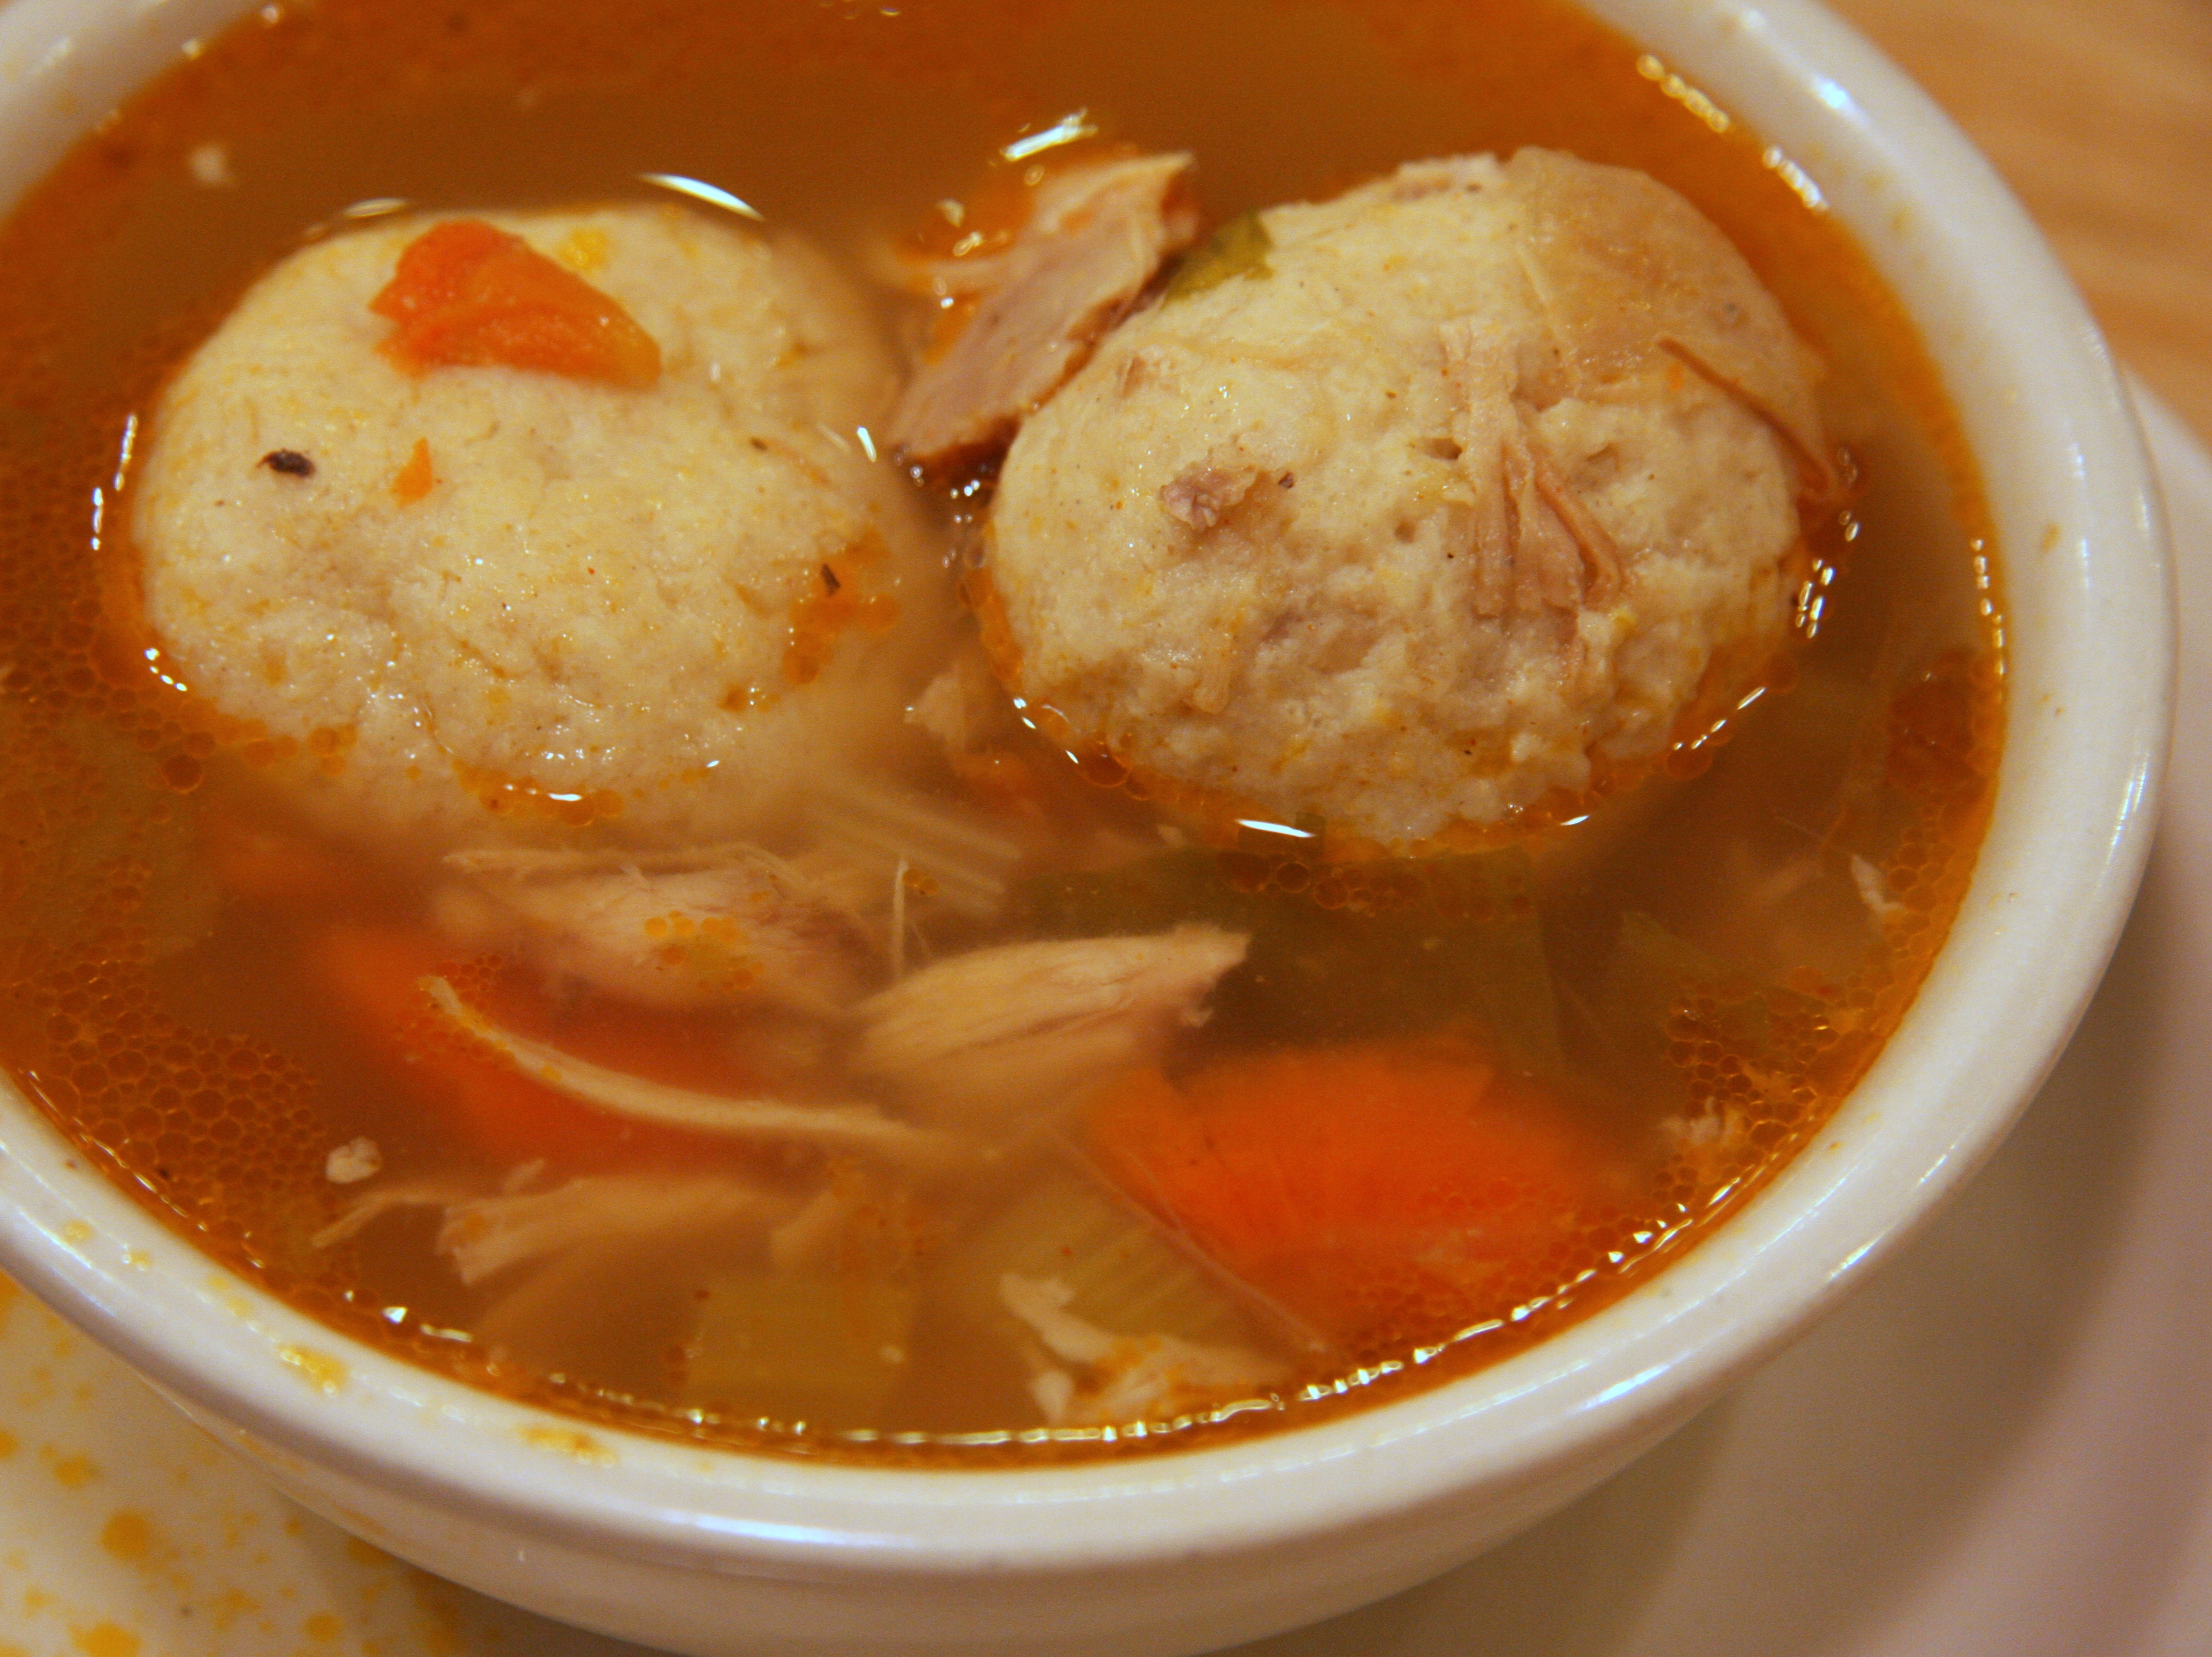 Traditionelles Rezept: Mazzeknödel in der Suppe.|wikimedia